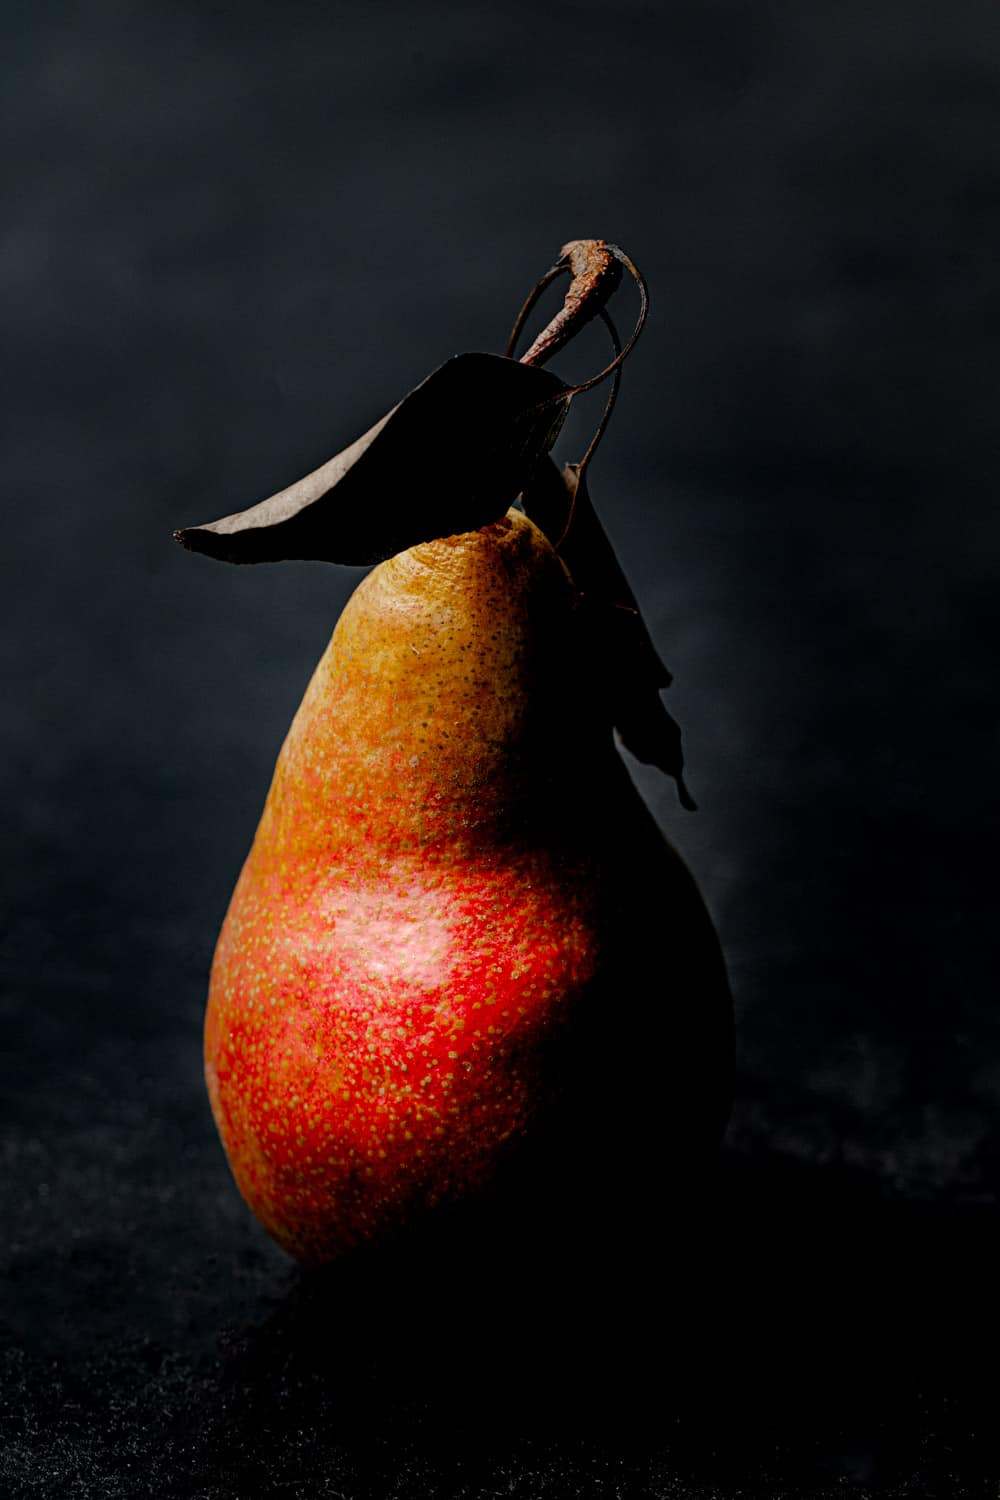 One red pear, with leaves still on it, straight on and up close shot, on a black background.